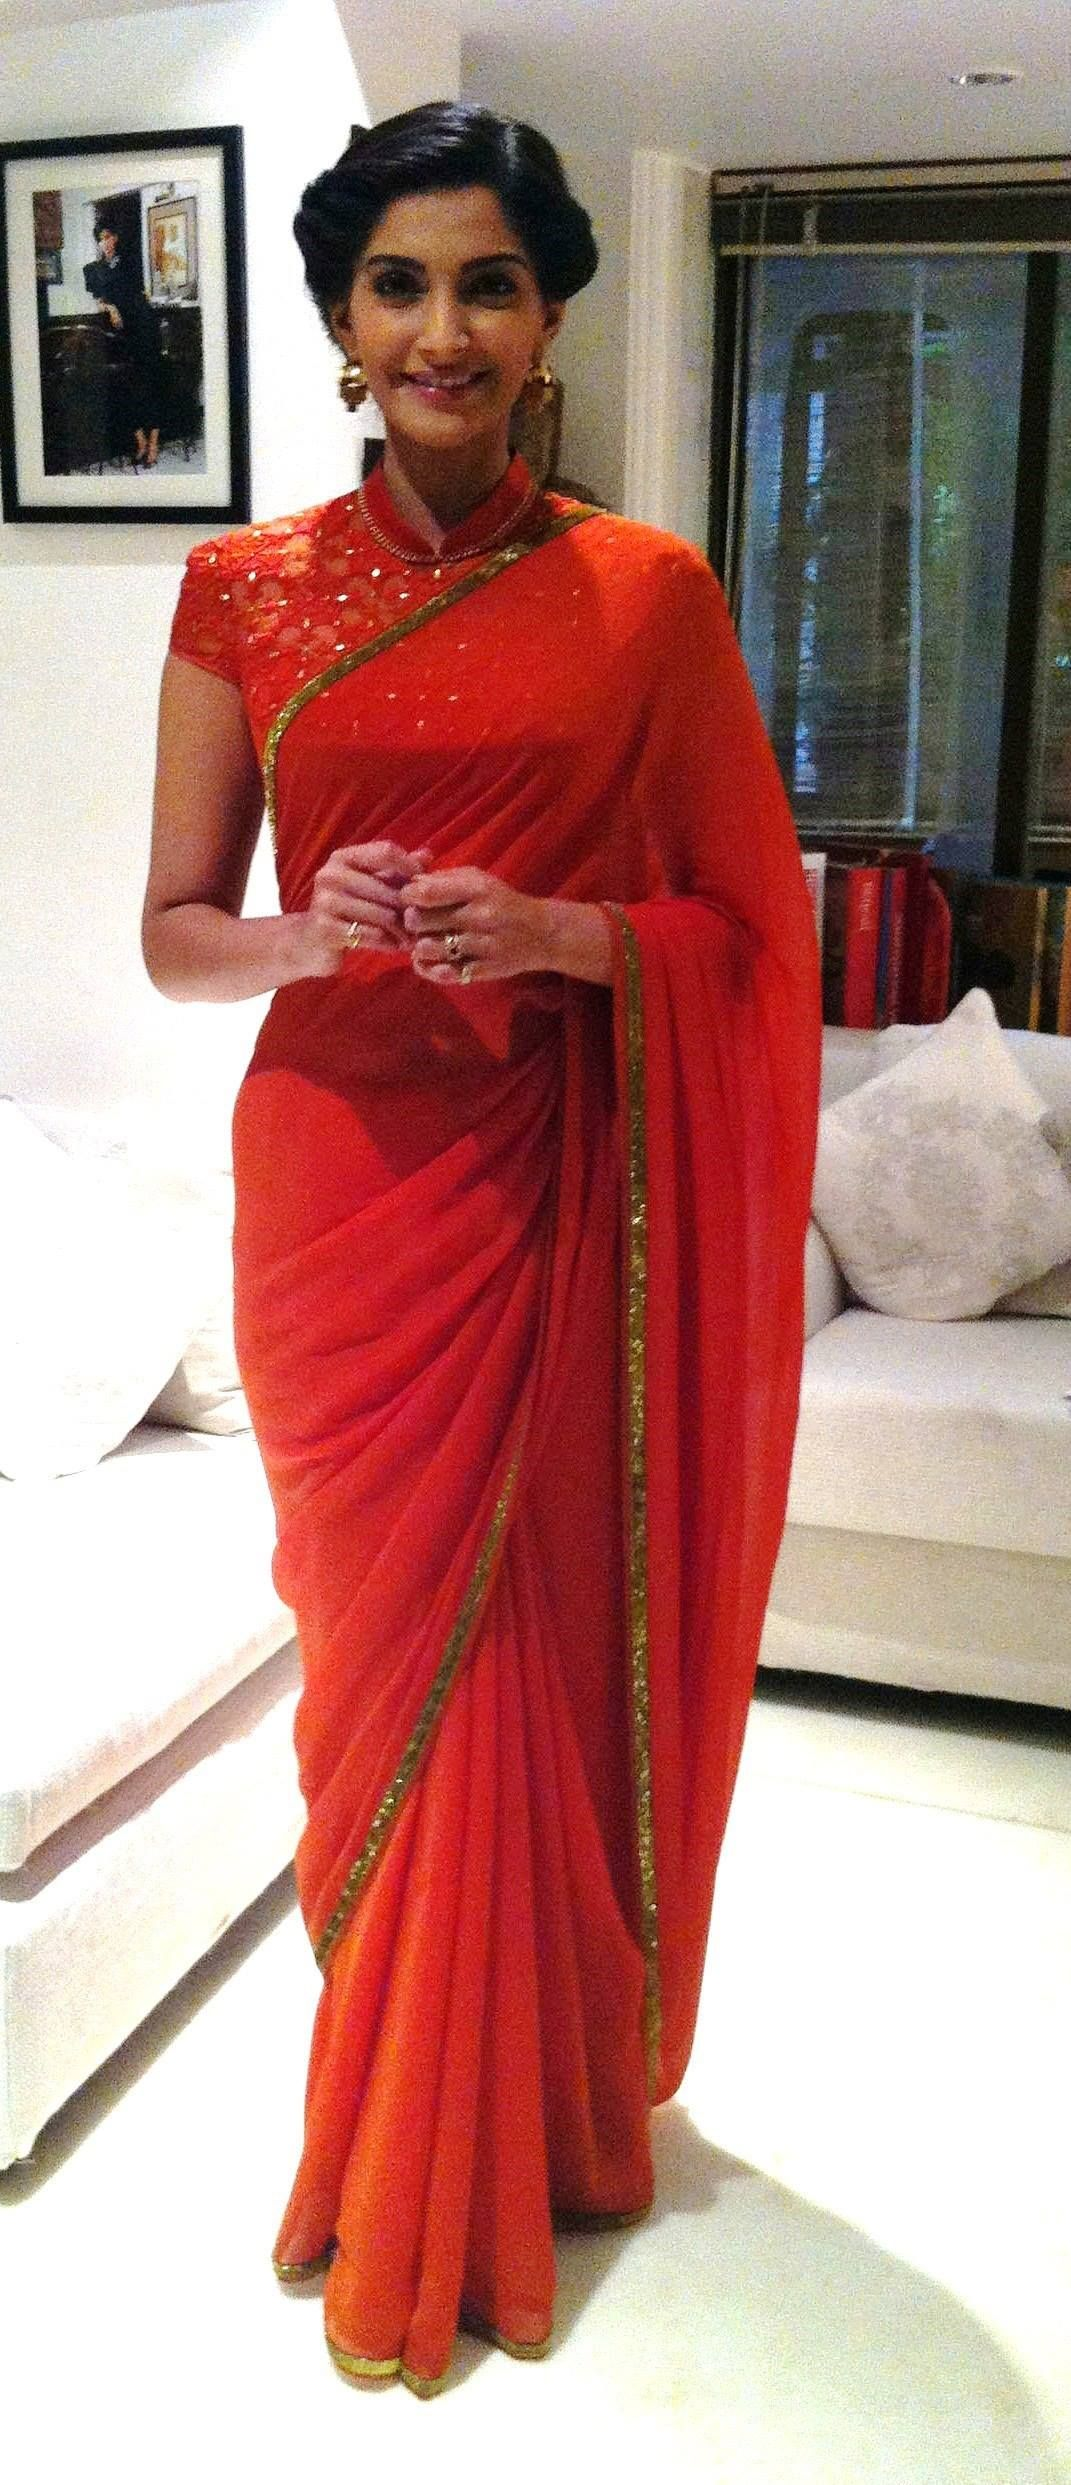 ee55375afce57d Simple yet very elegant and graceful in a plain saree.